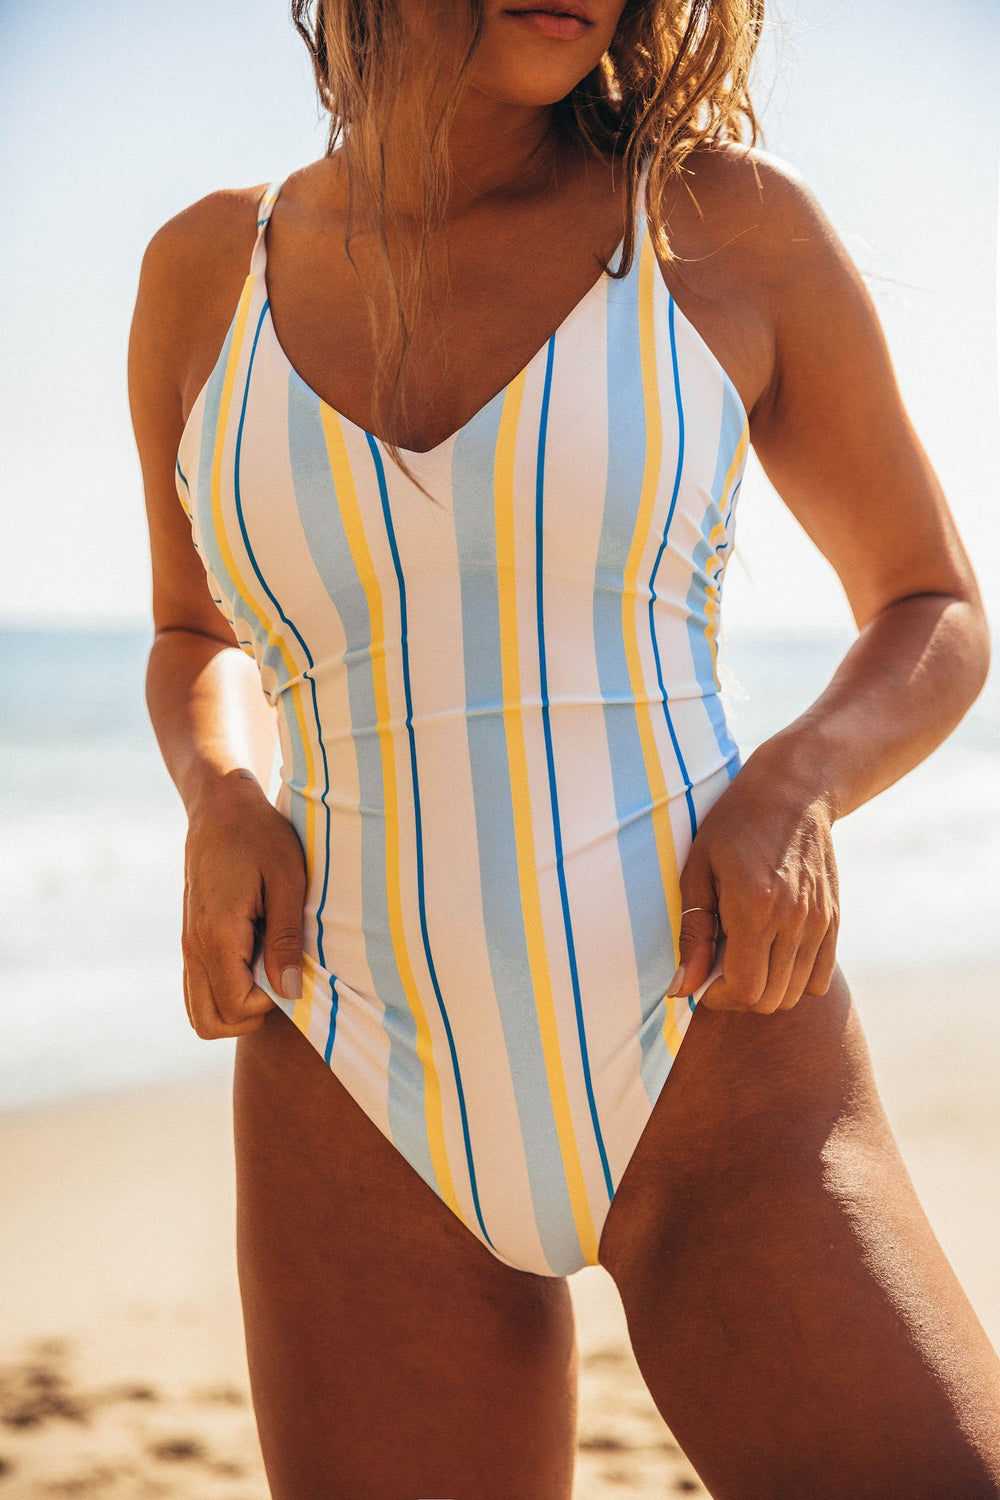 Positano Swimsuit - Vintage Stripes